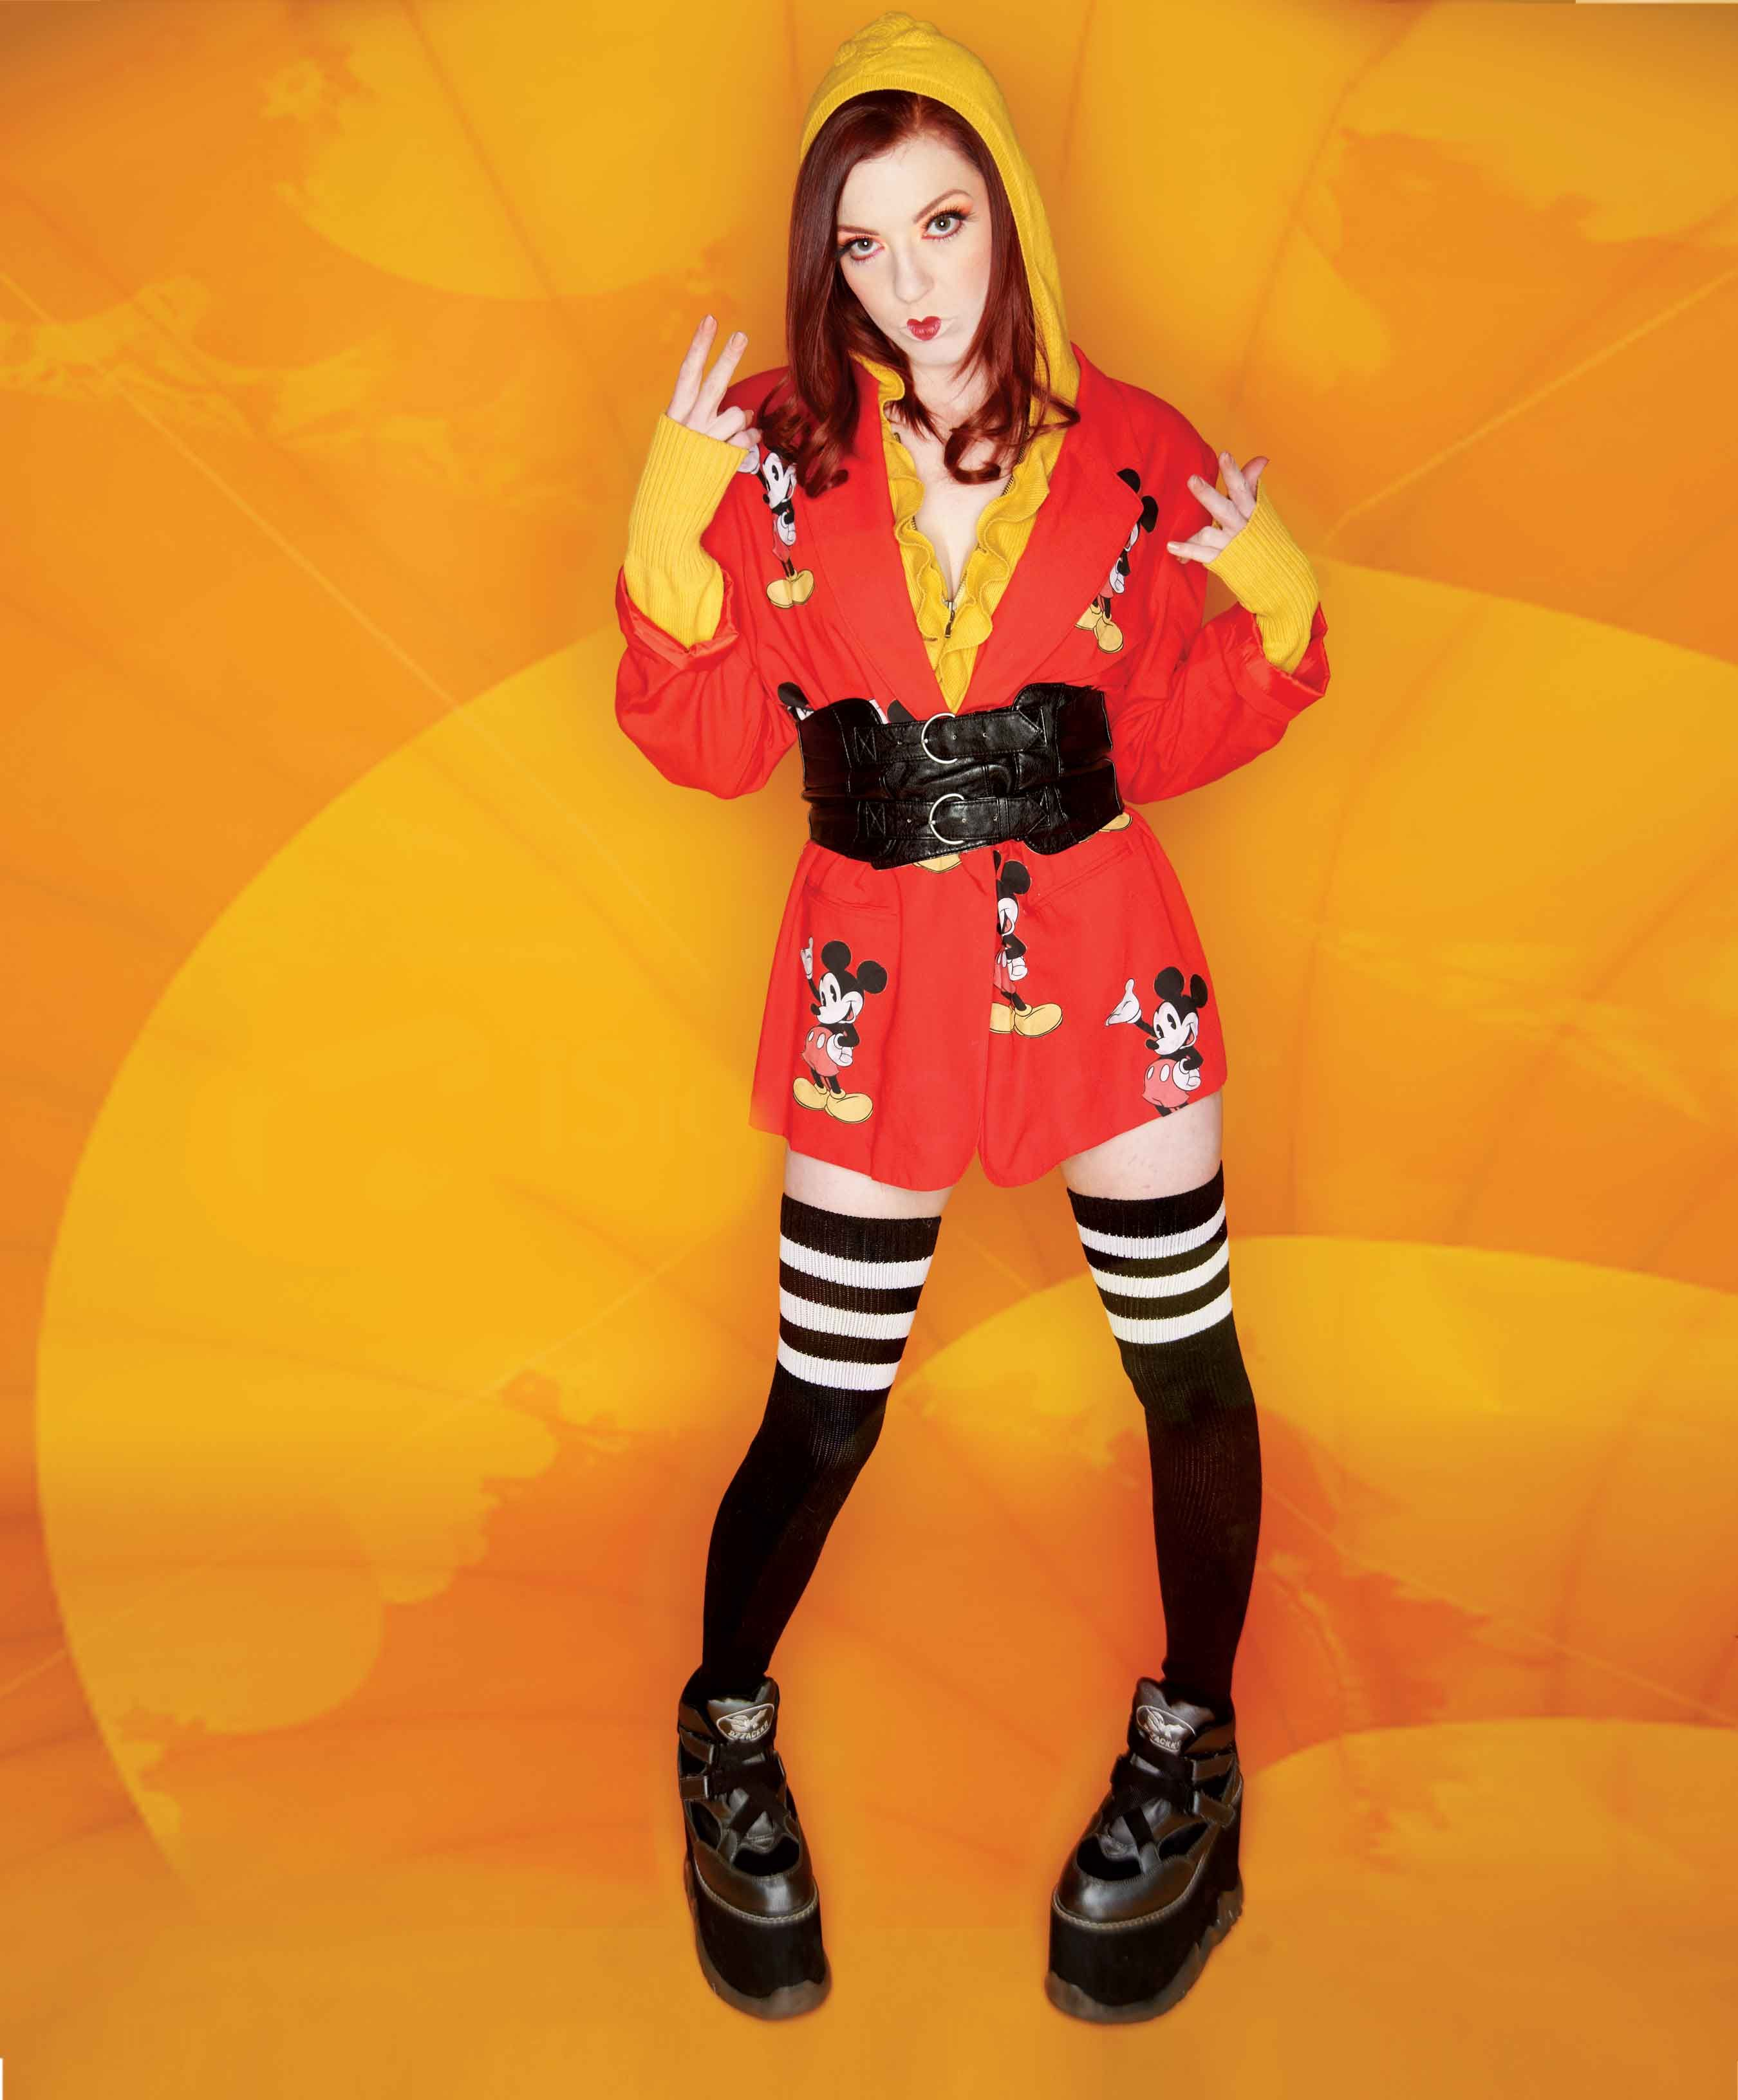 Get Your Harajuku On / Photography by Chuck St. John (May 2011 B-Metro Magazine)